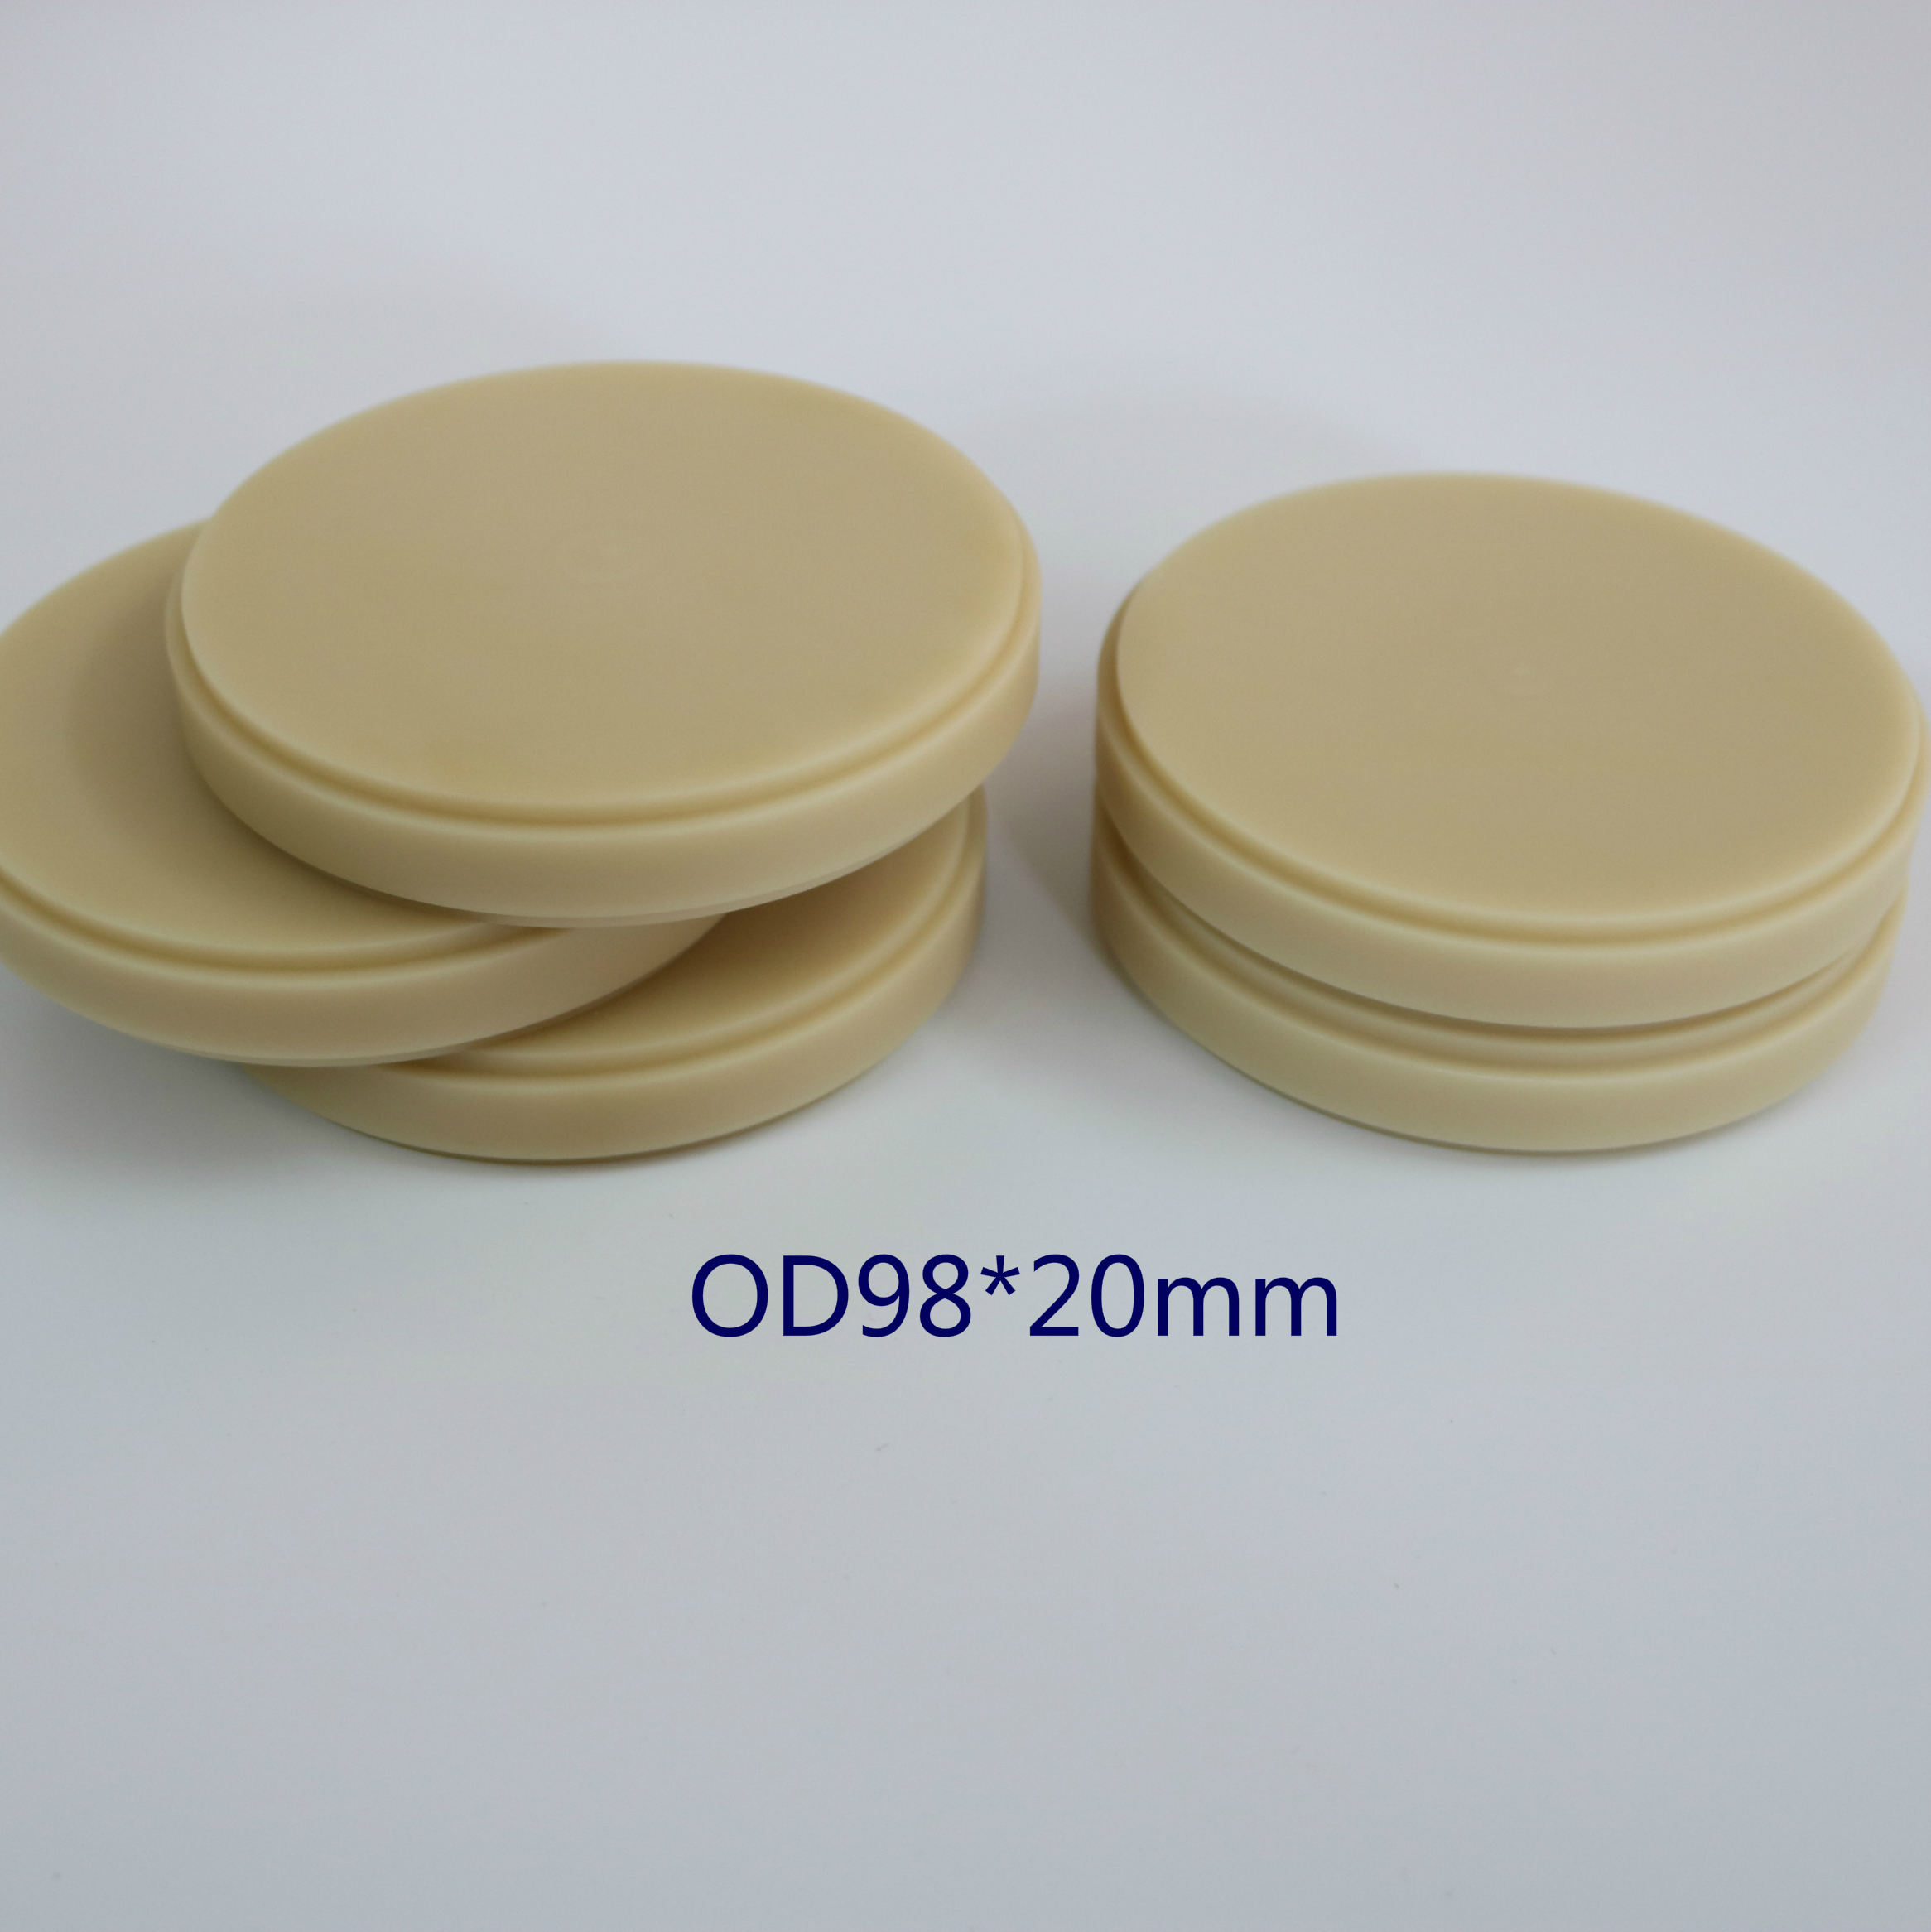 Dental PMMA Discs Blank Denture Materials Blocks 5pcs/lot OD98x20mm for Open CADCAM System